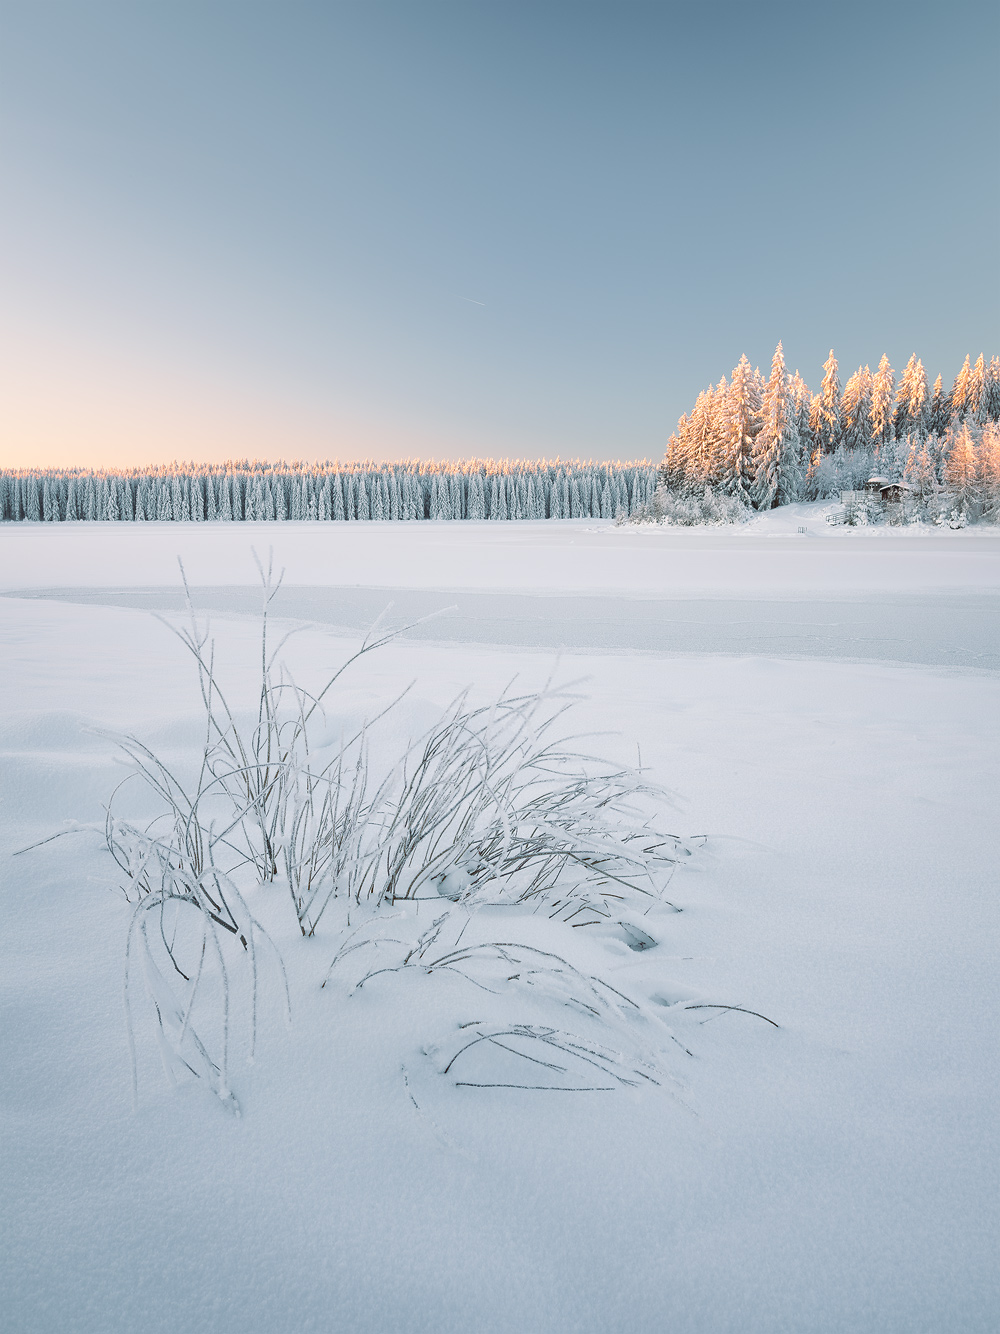 Frosty Morning, Ore Mountains, Germany by Nils Leonhardt